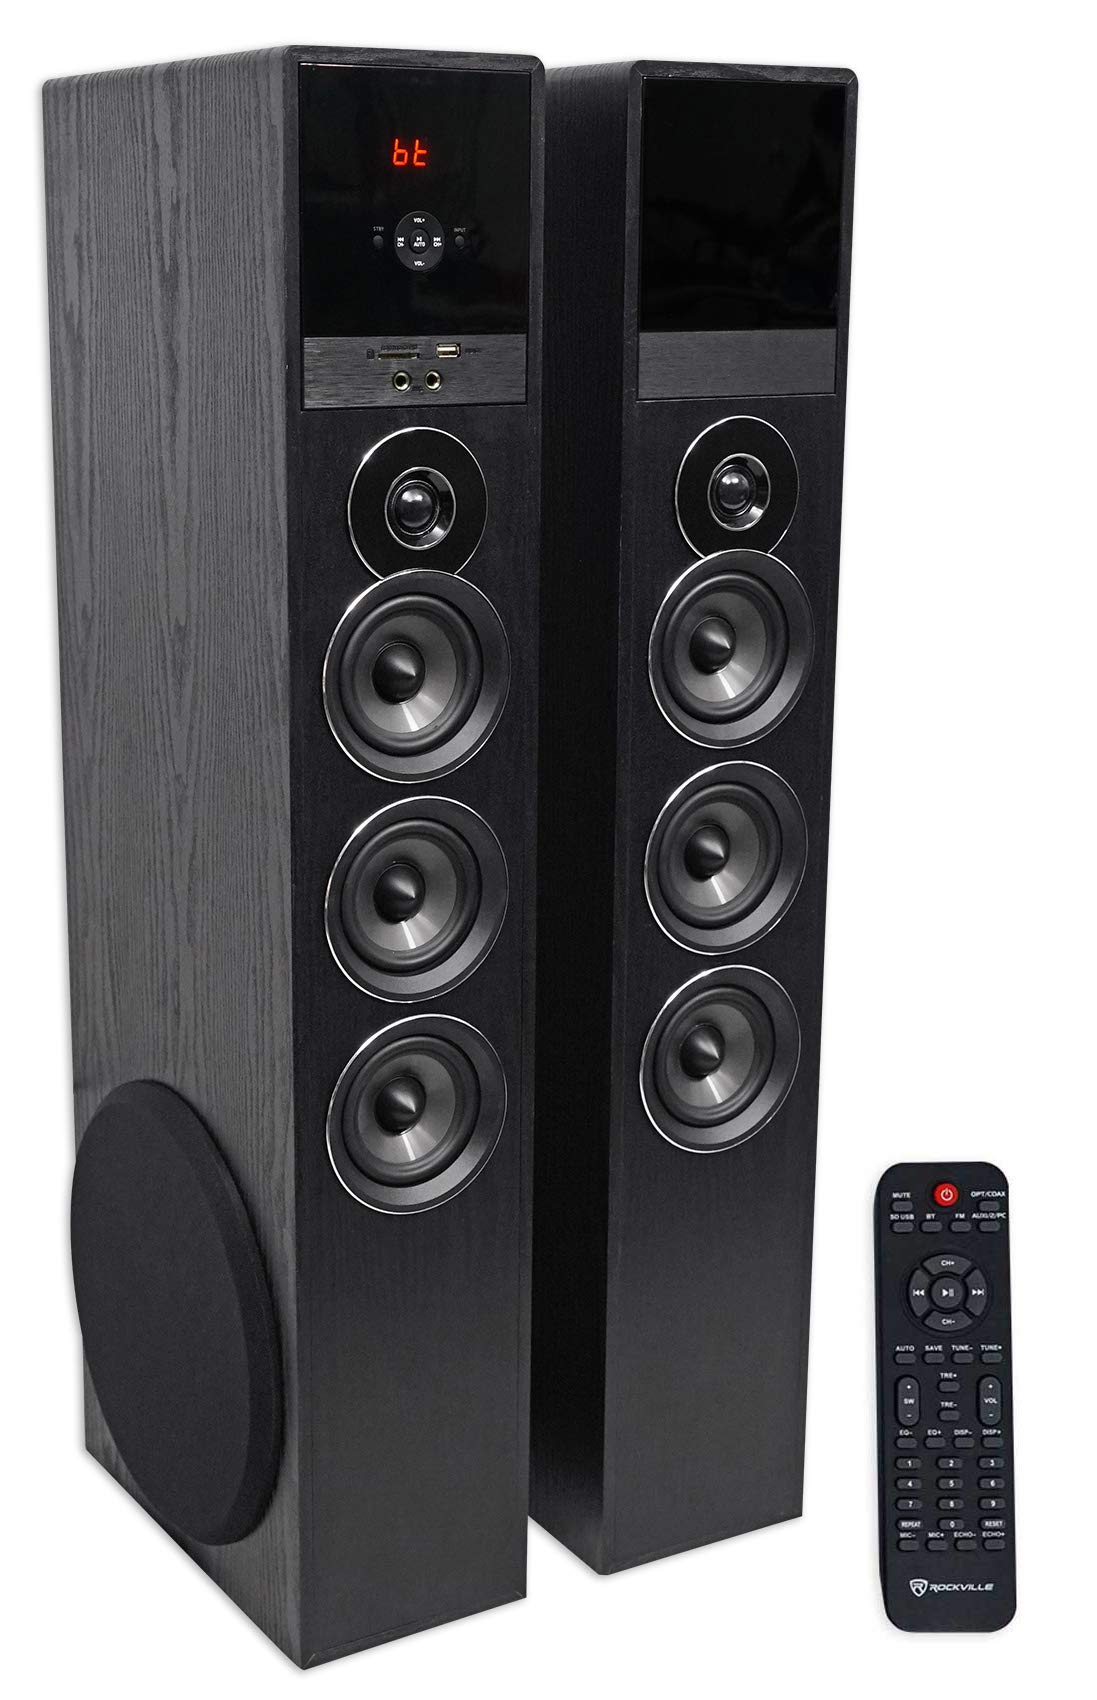 Rockville TM150B Black Home Theater System Tower Speakers 10'' Sub/Blueooth/USB by Rockville